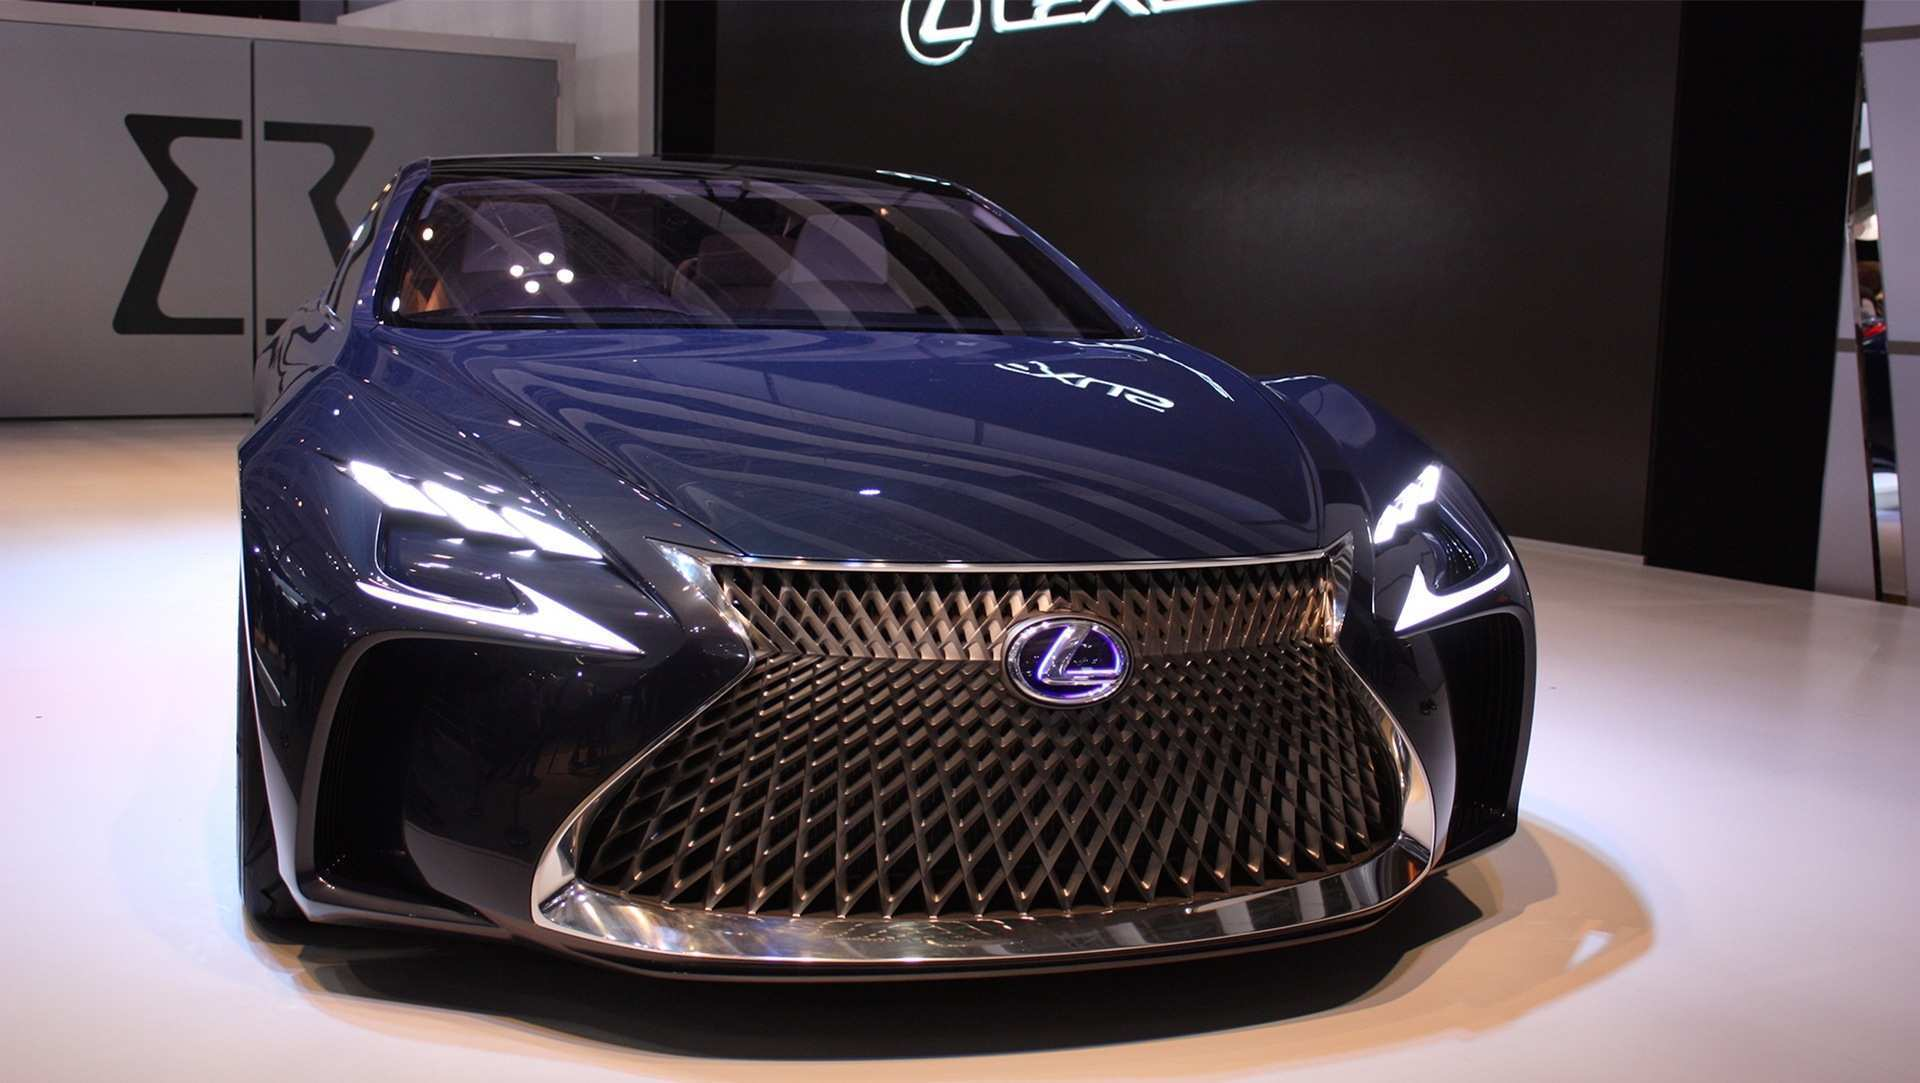 45 The Best 2020 Lexus LSs Exterior